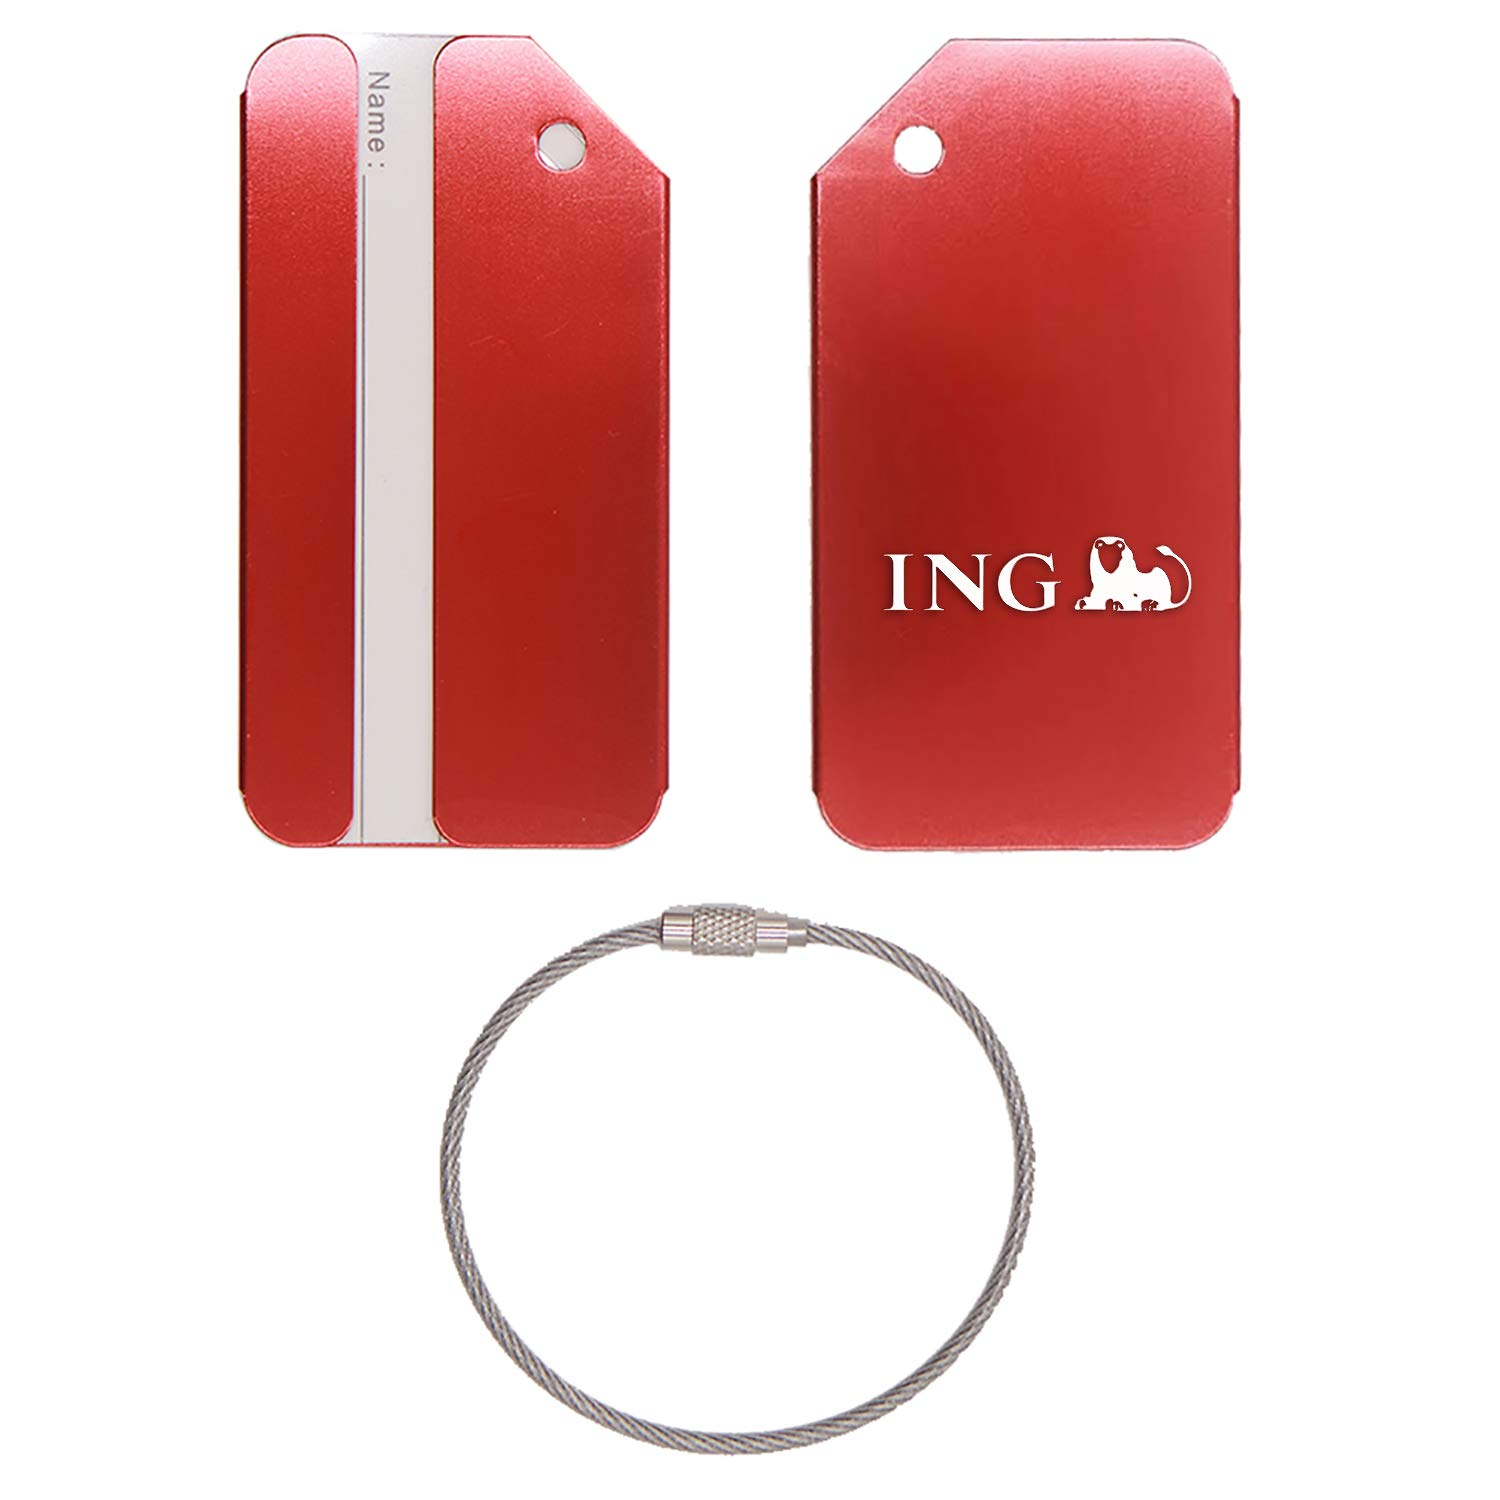 f40086a5e99c Amazon.com: LOGO IGN POLAND STAINLESS STEEL - ENGRAVED LUGGAGE TAG ...